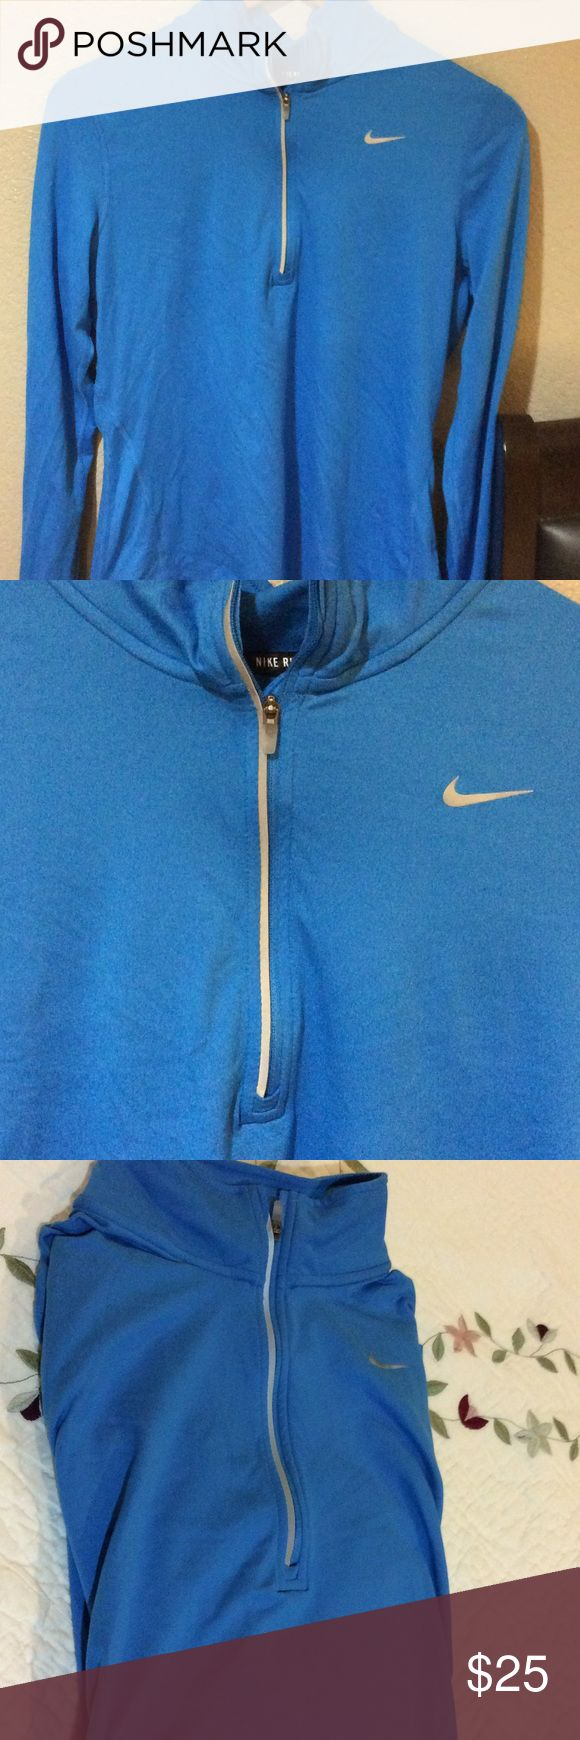 Nike Running jacket Never worn blue Nike running jacket.  Super comfy.  Pretty blue, small reflector circles on sleeves.  Holes for thumbs to keep your hands snug while running.  Nike Jackets & Coats